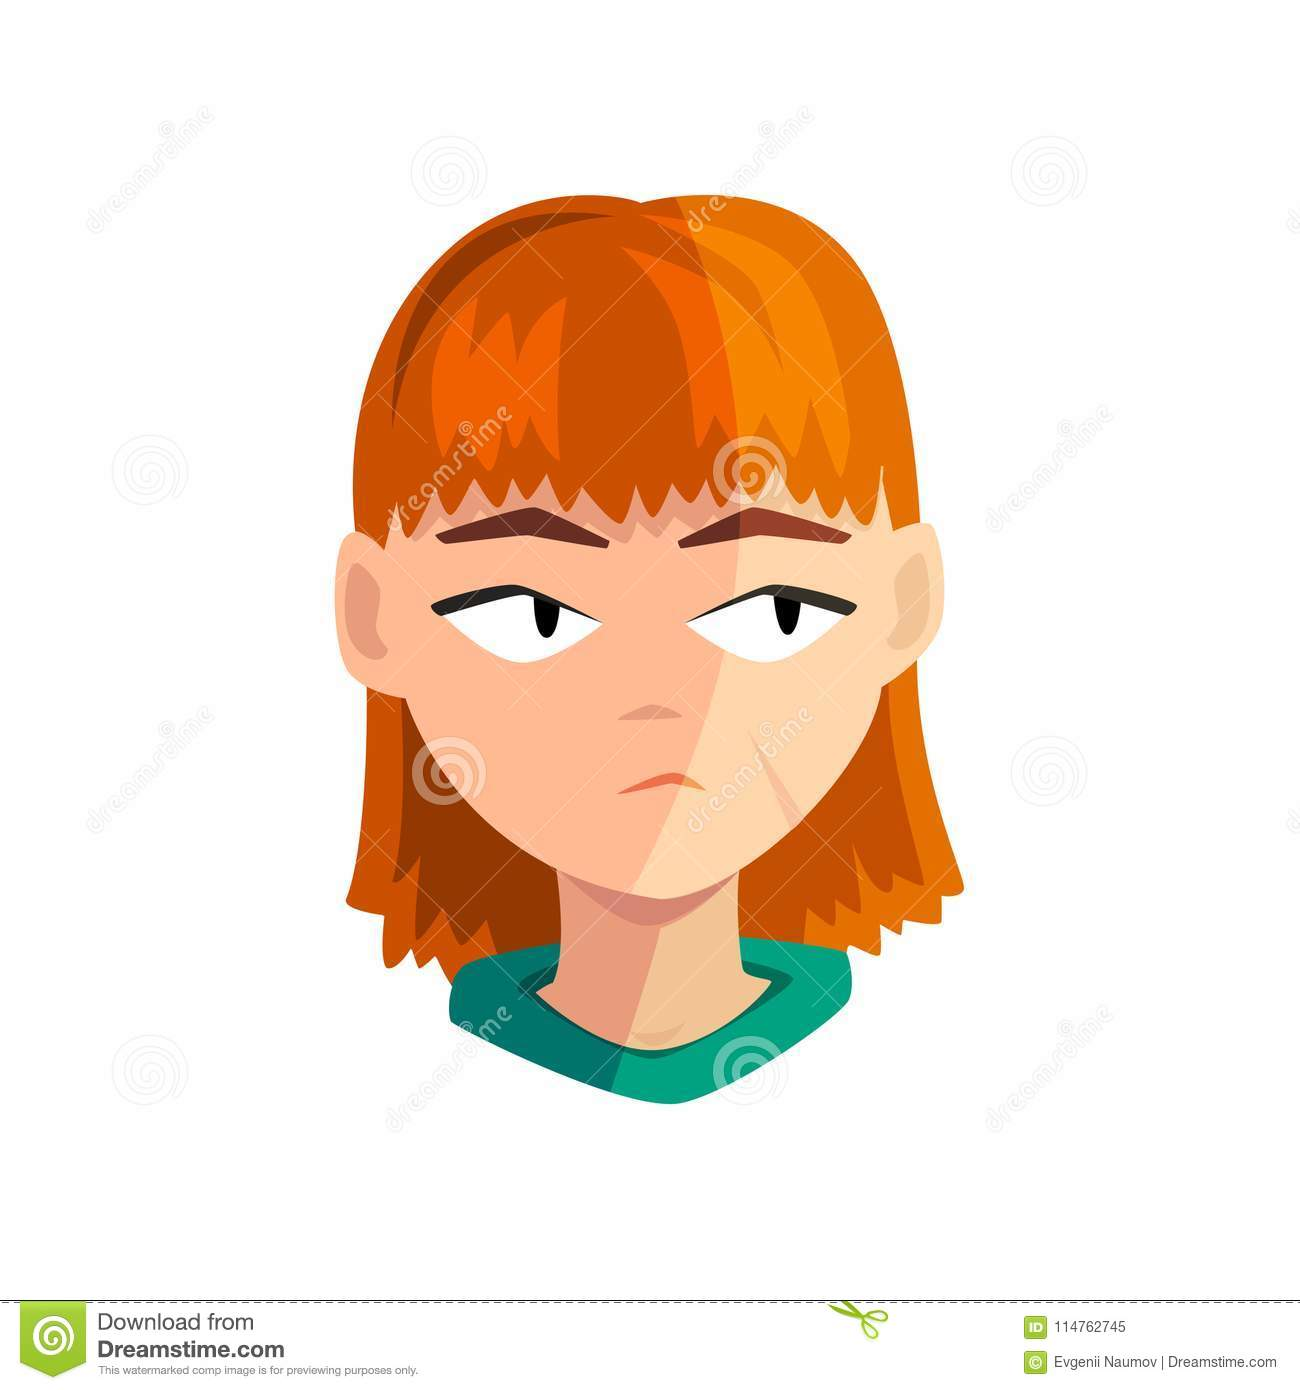 redhead avatars Animated female